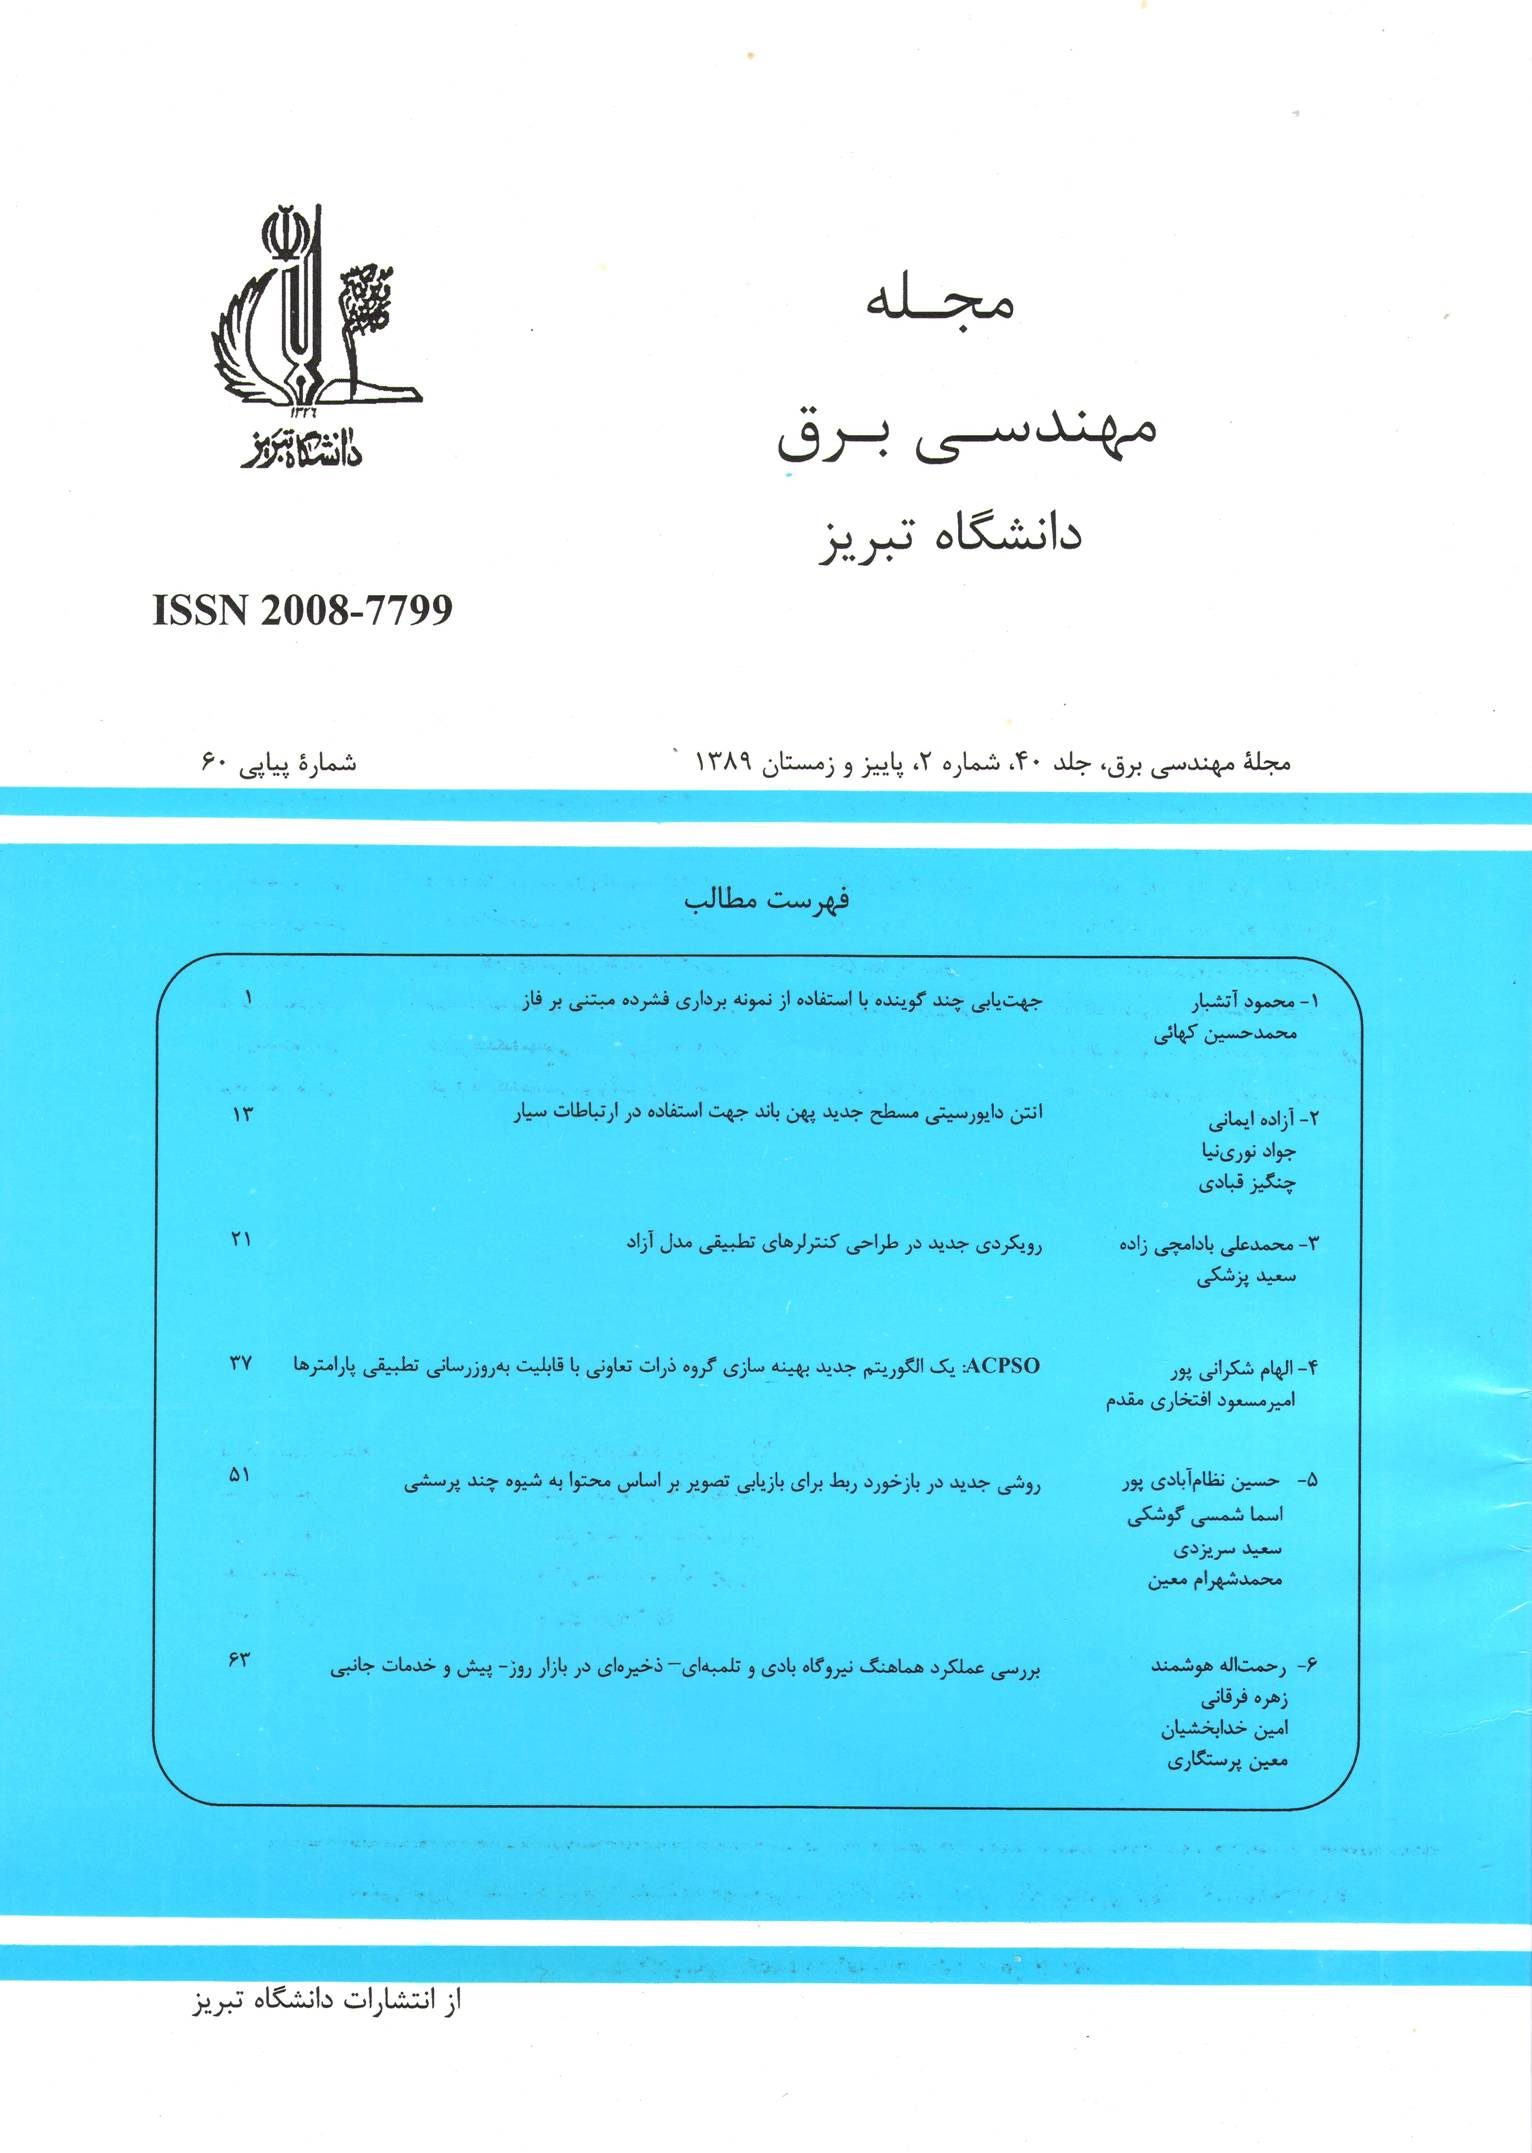 TABRIZ JOURNAL OF ELECTRICAL ENGINEERING